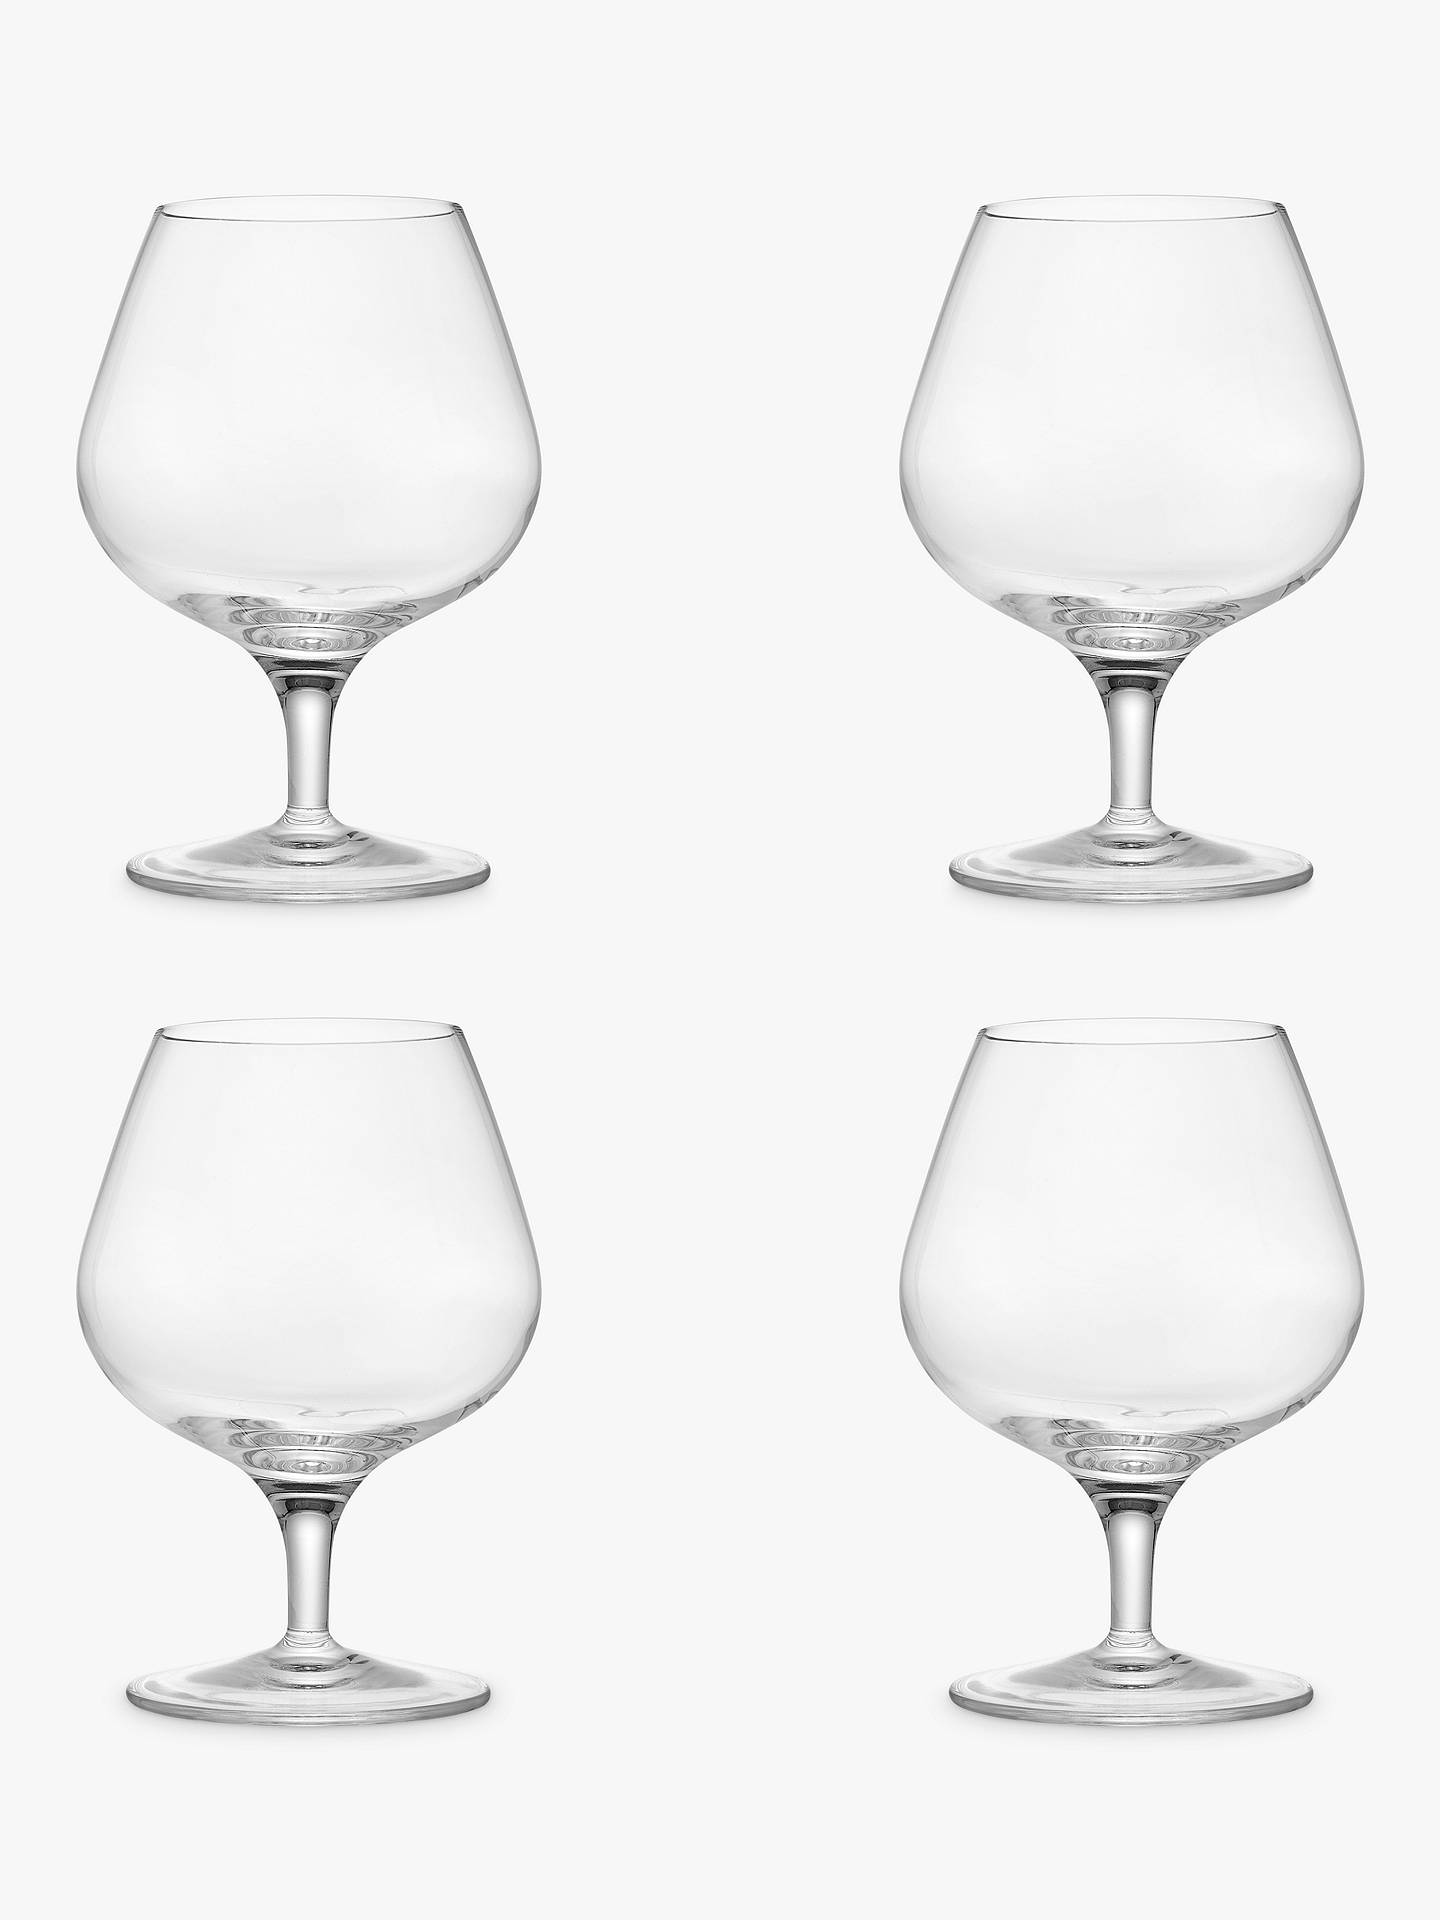 BuyJohn Lewis & Partners Michelangelo Brandy Glass, Set of 4, 395ml Online at johnlewis.com